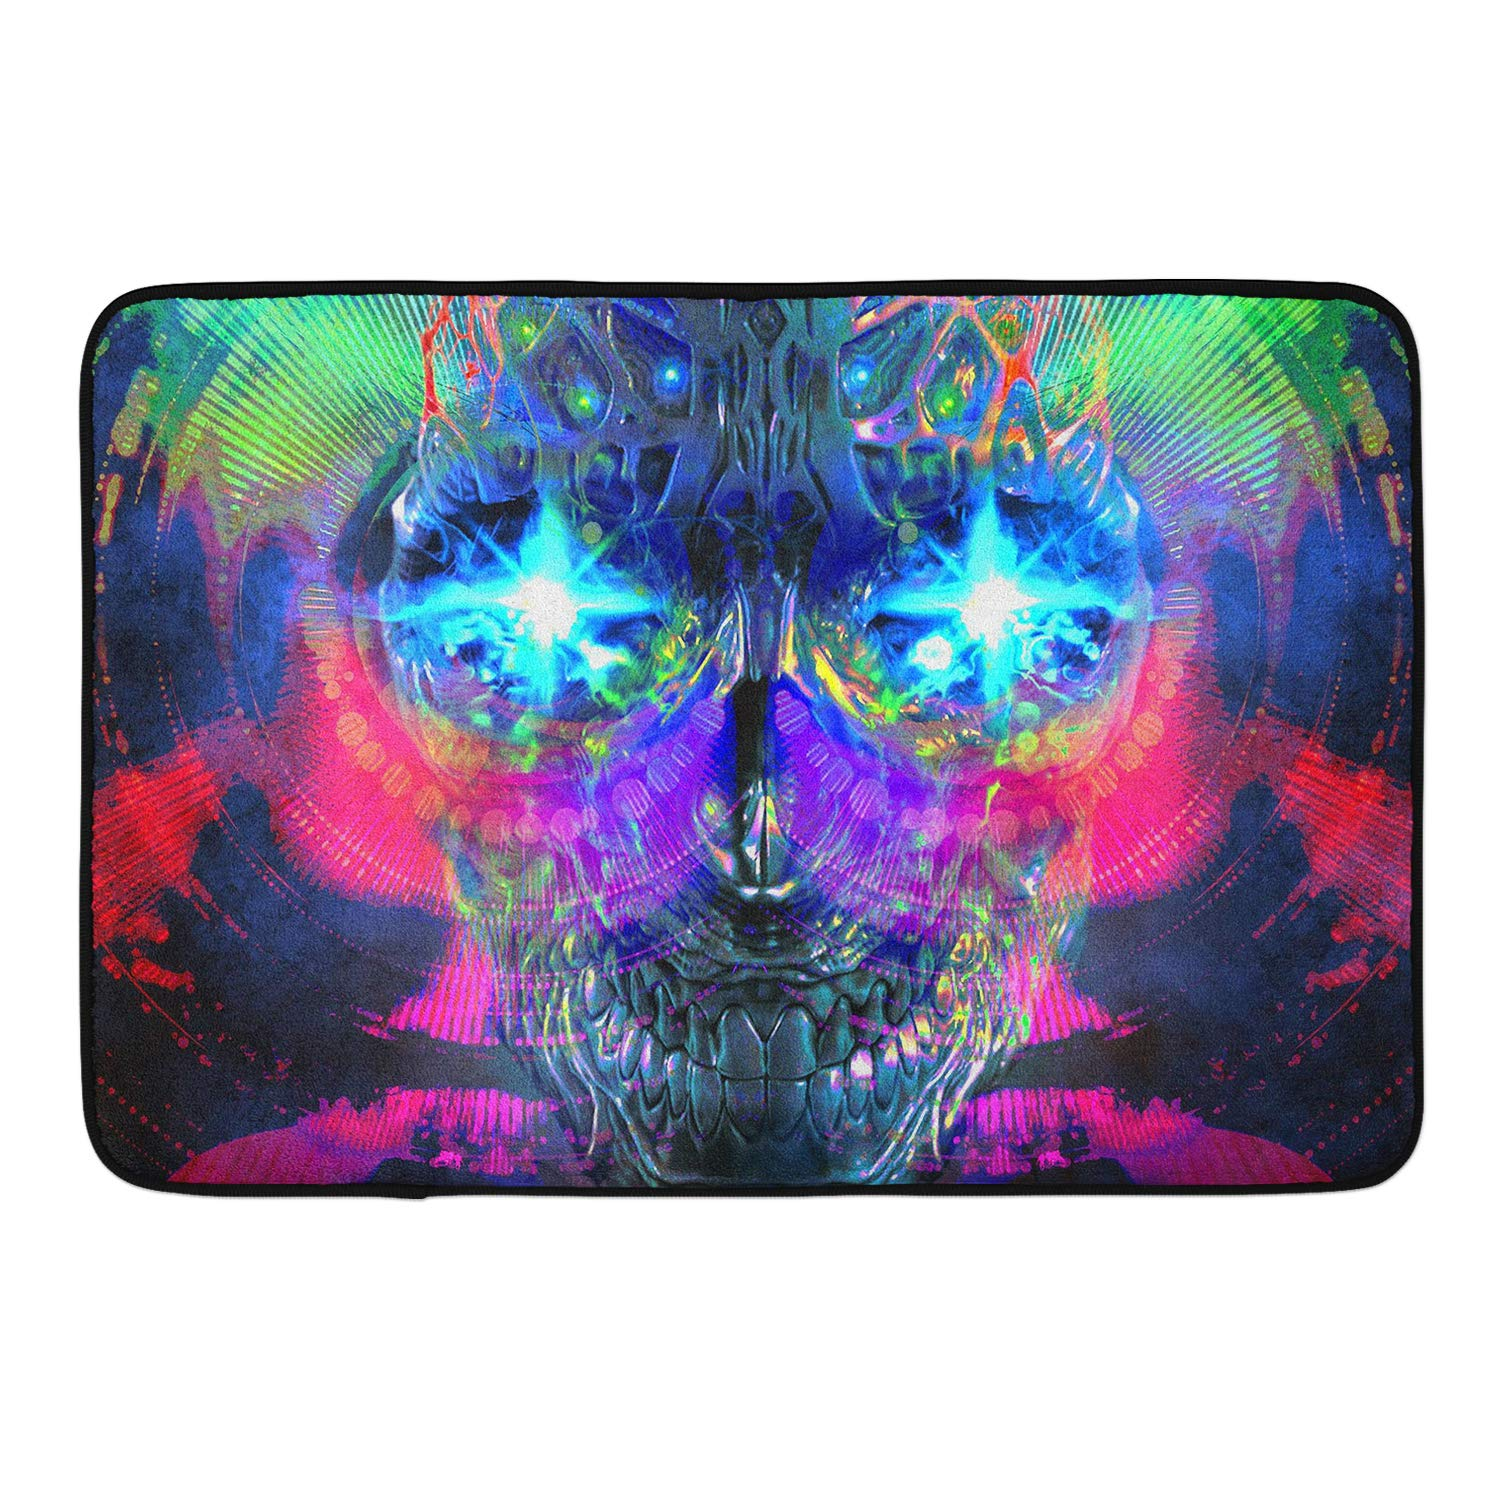 CIGOCI Non-Slip Memory Foam Bath Rugs, 3D Print Psychedelic Trippy Robot - 18 x 36 Inch, Extra Absorbent,Soft,Duarable and Quick-Dry Shaggy Rugs